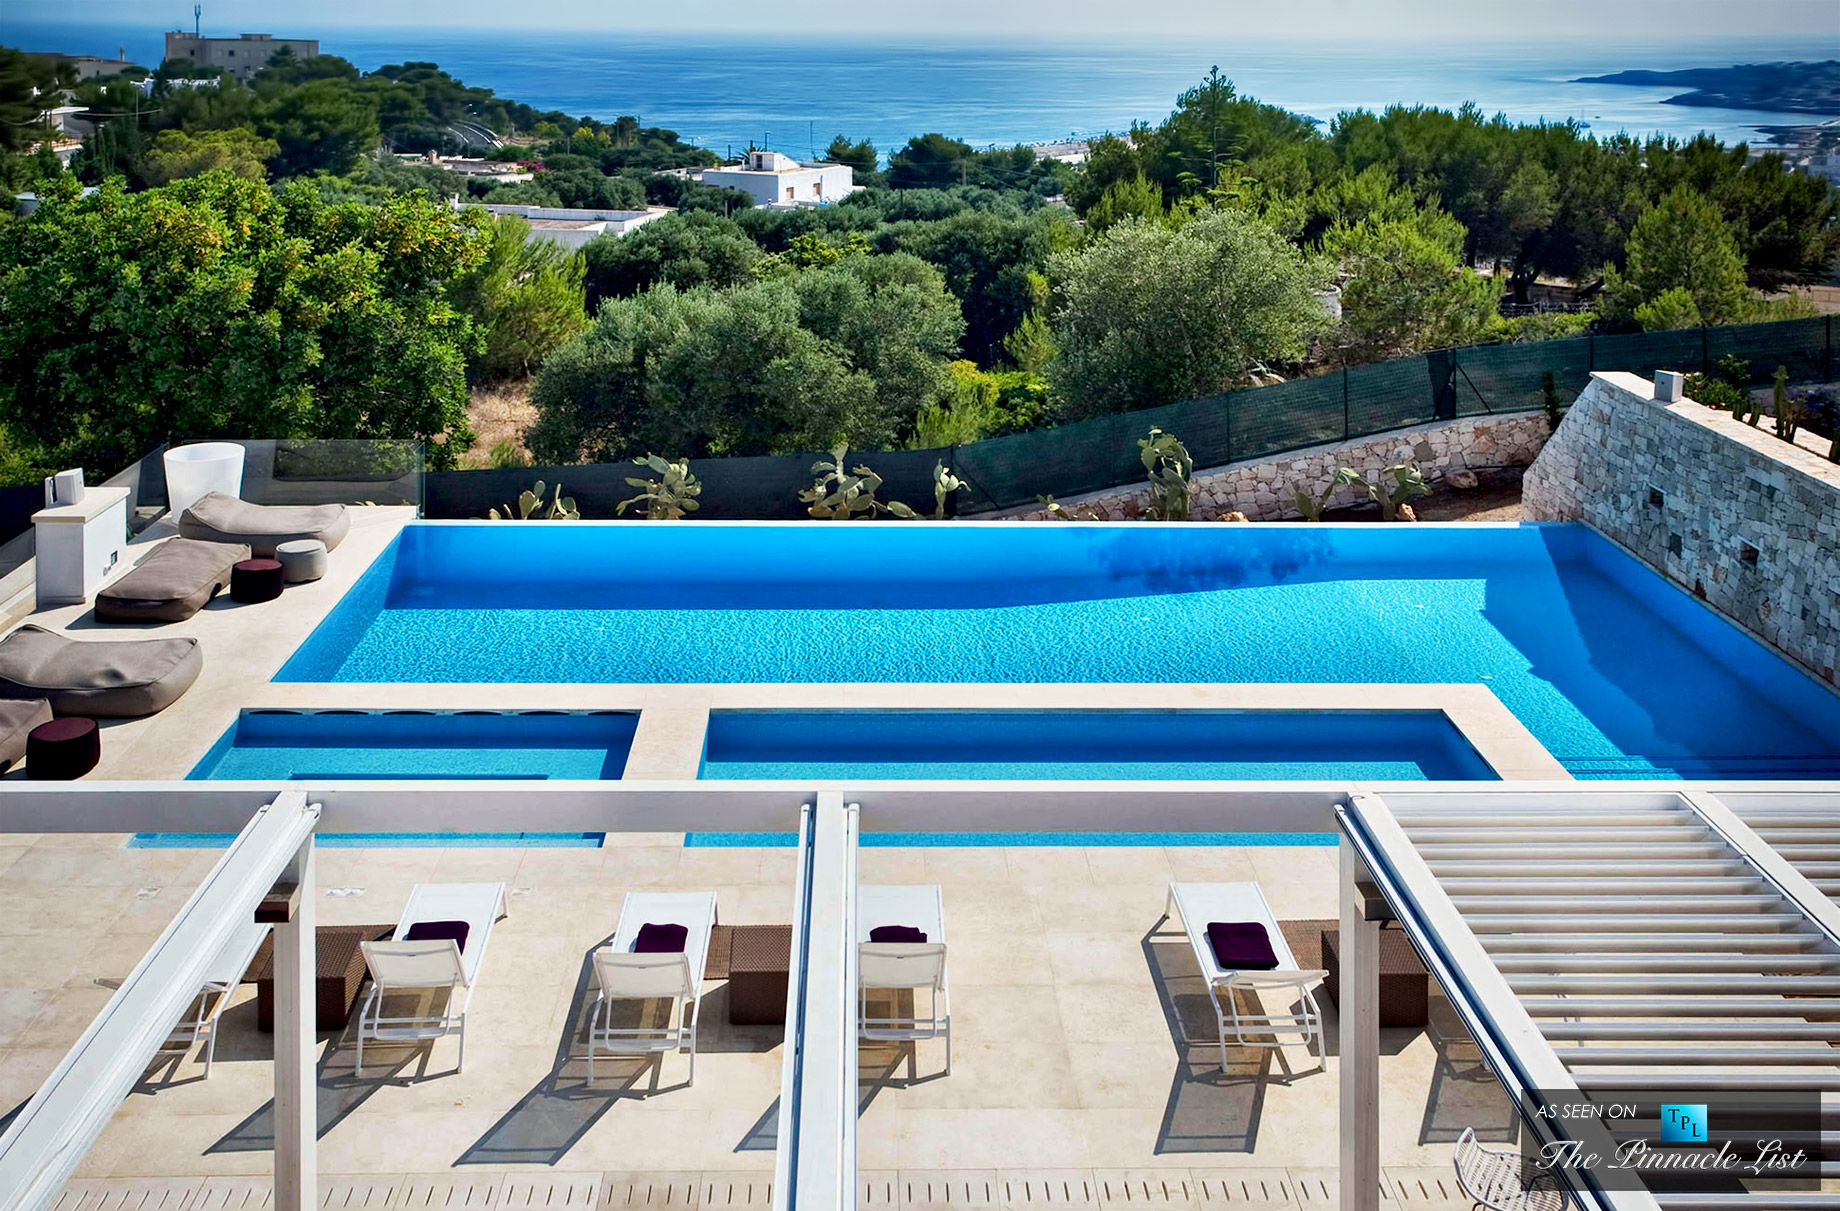 Villa Bianca – A Revelation of Calm Whites, Vast Openness, and Breathtaking Views in Apulia, Italy